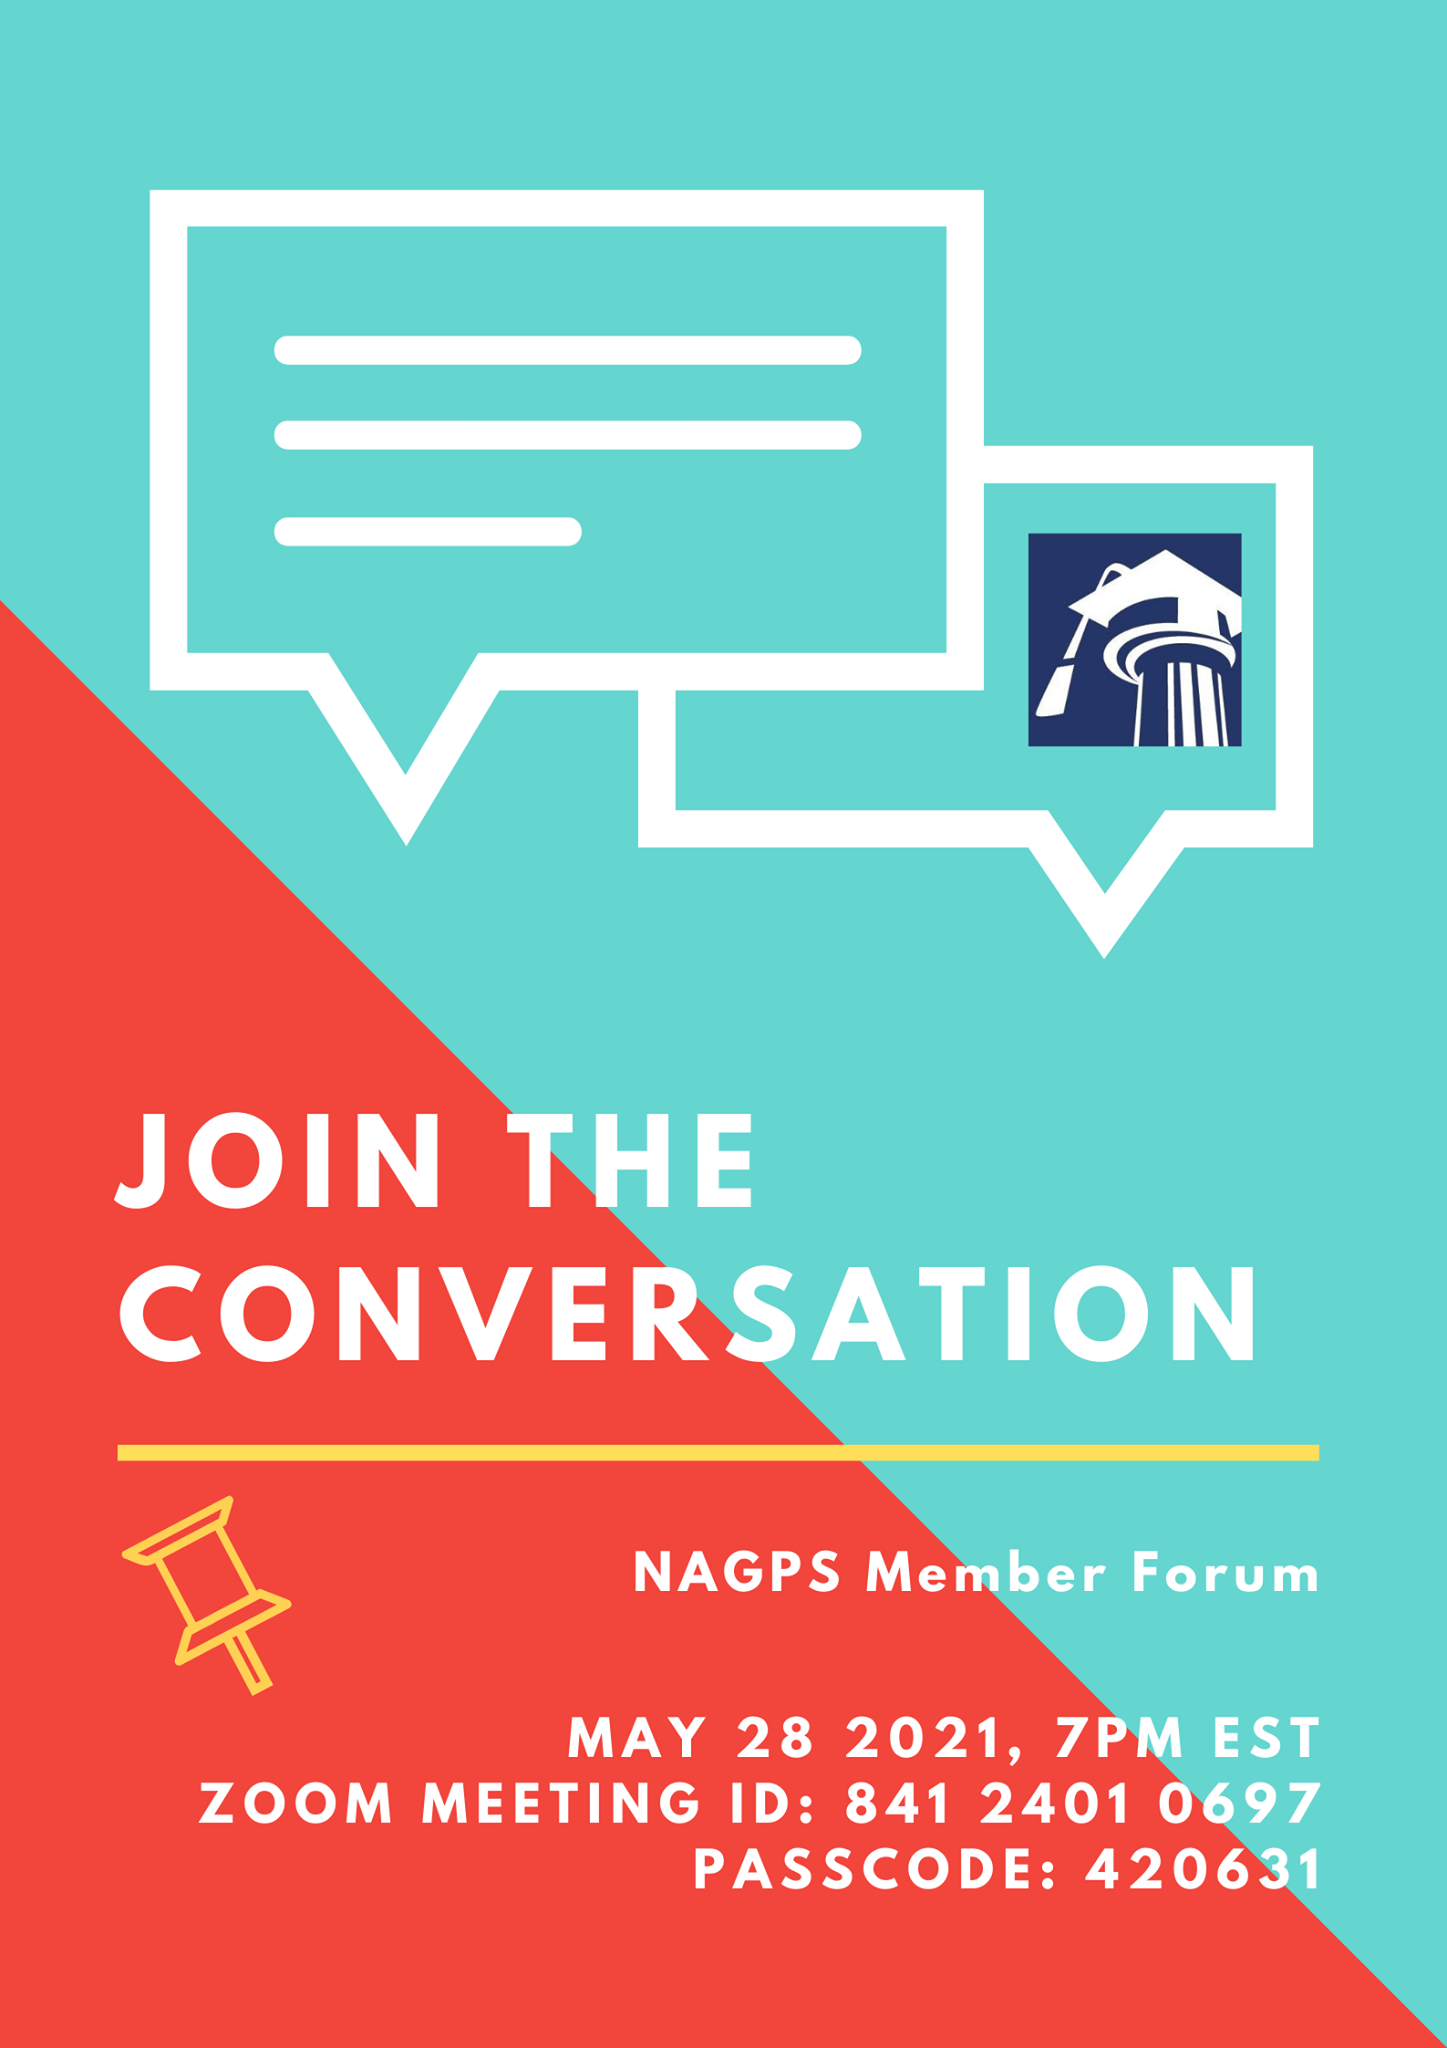 We are happy to announce the first in a series of monthly forums for GSO's to discuss projects they are working on, issues they may be facing, or just to…